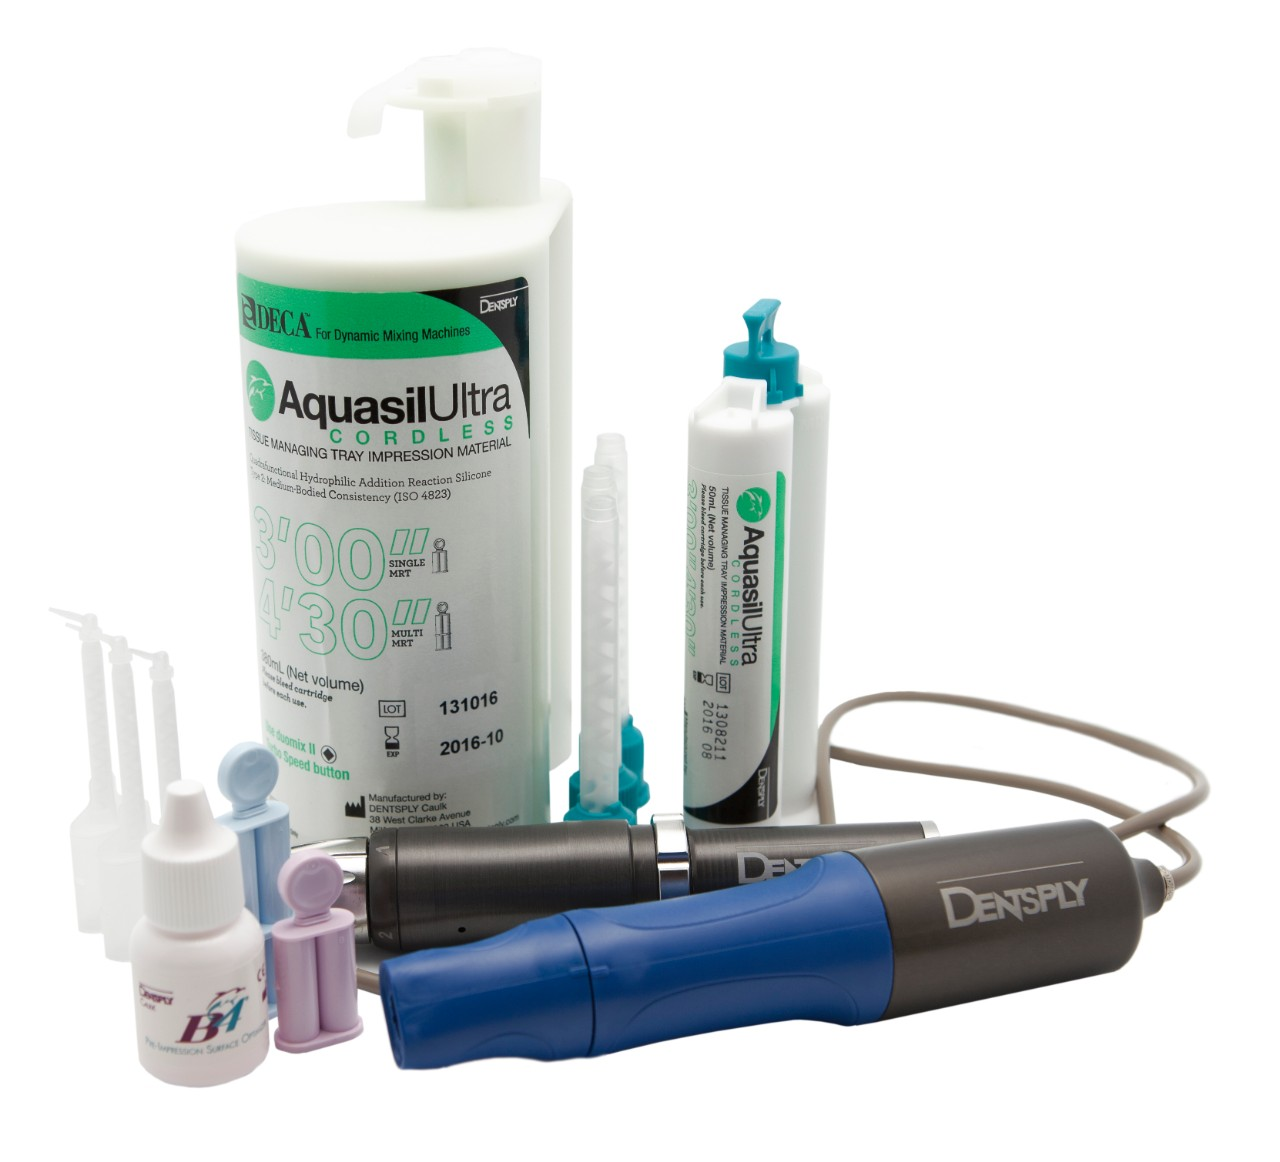 Aquasil Ultra Cordless Tissue Managing Impression System